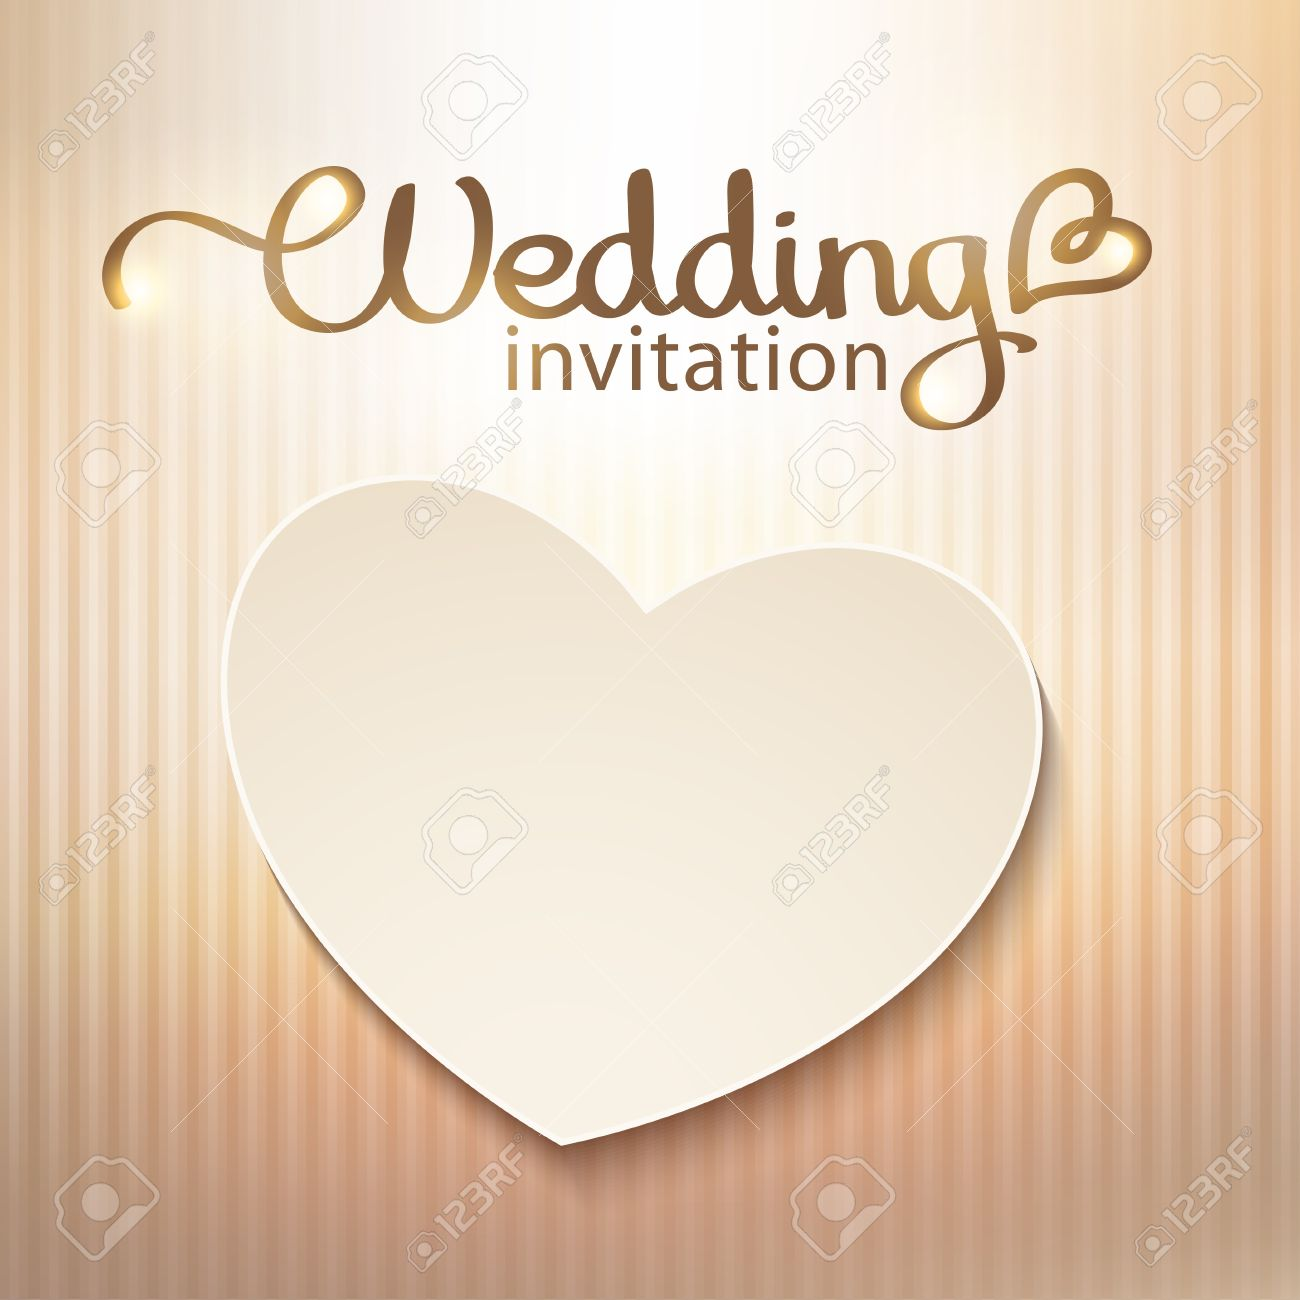 wedding invitation with paper heart and gold background stock vector 21171691 - Wedding Invitation Background